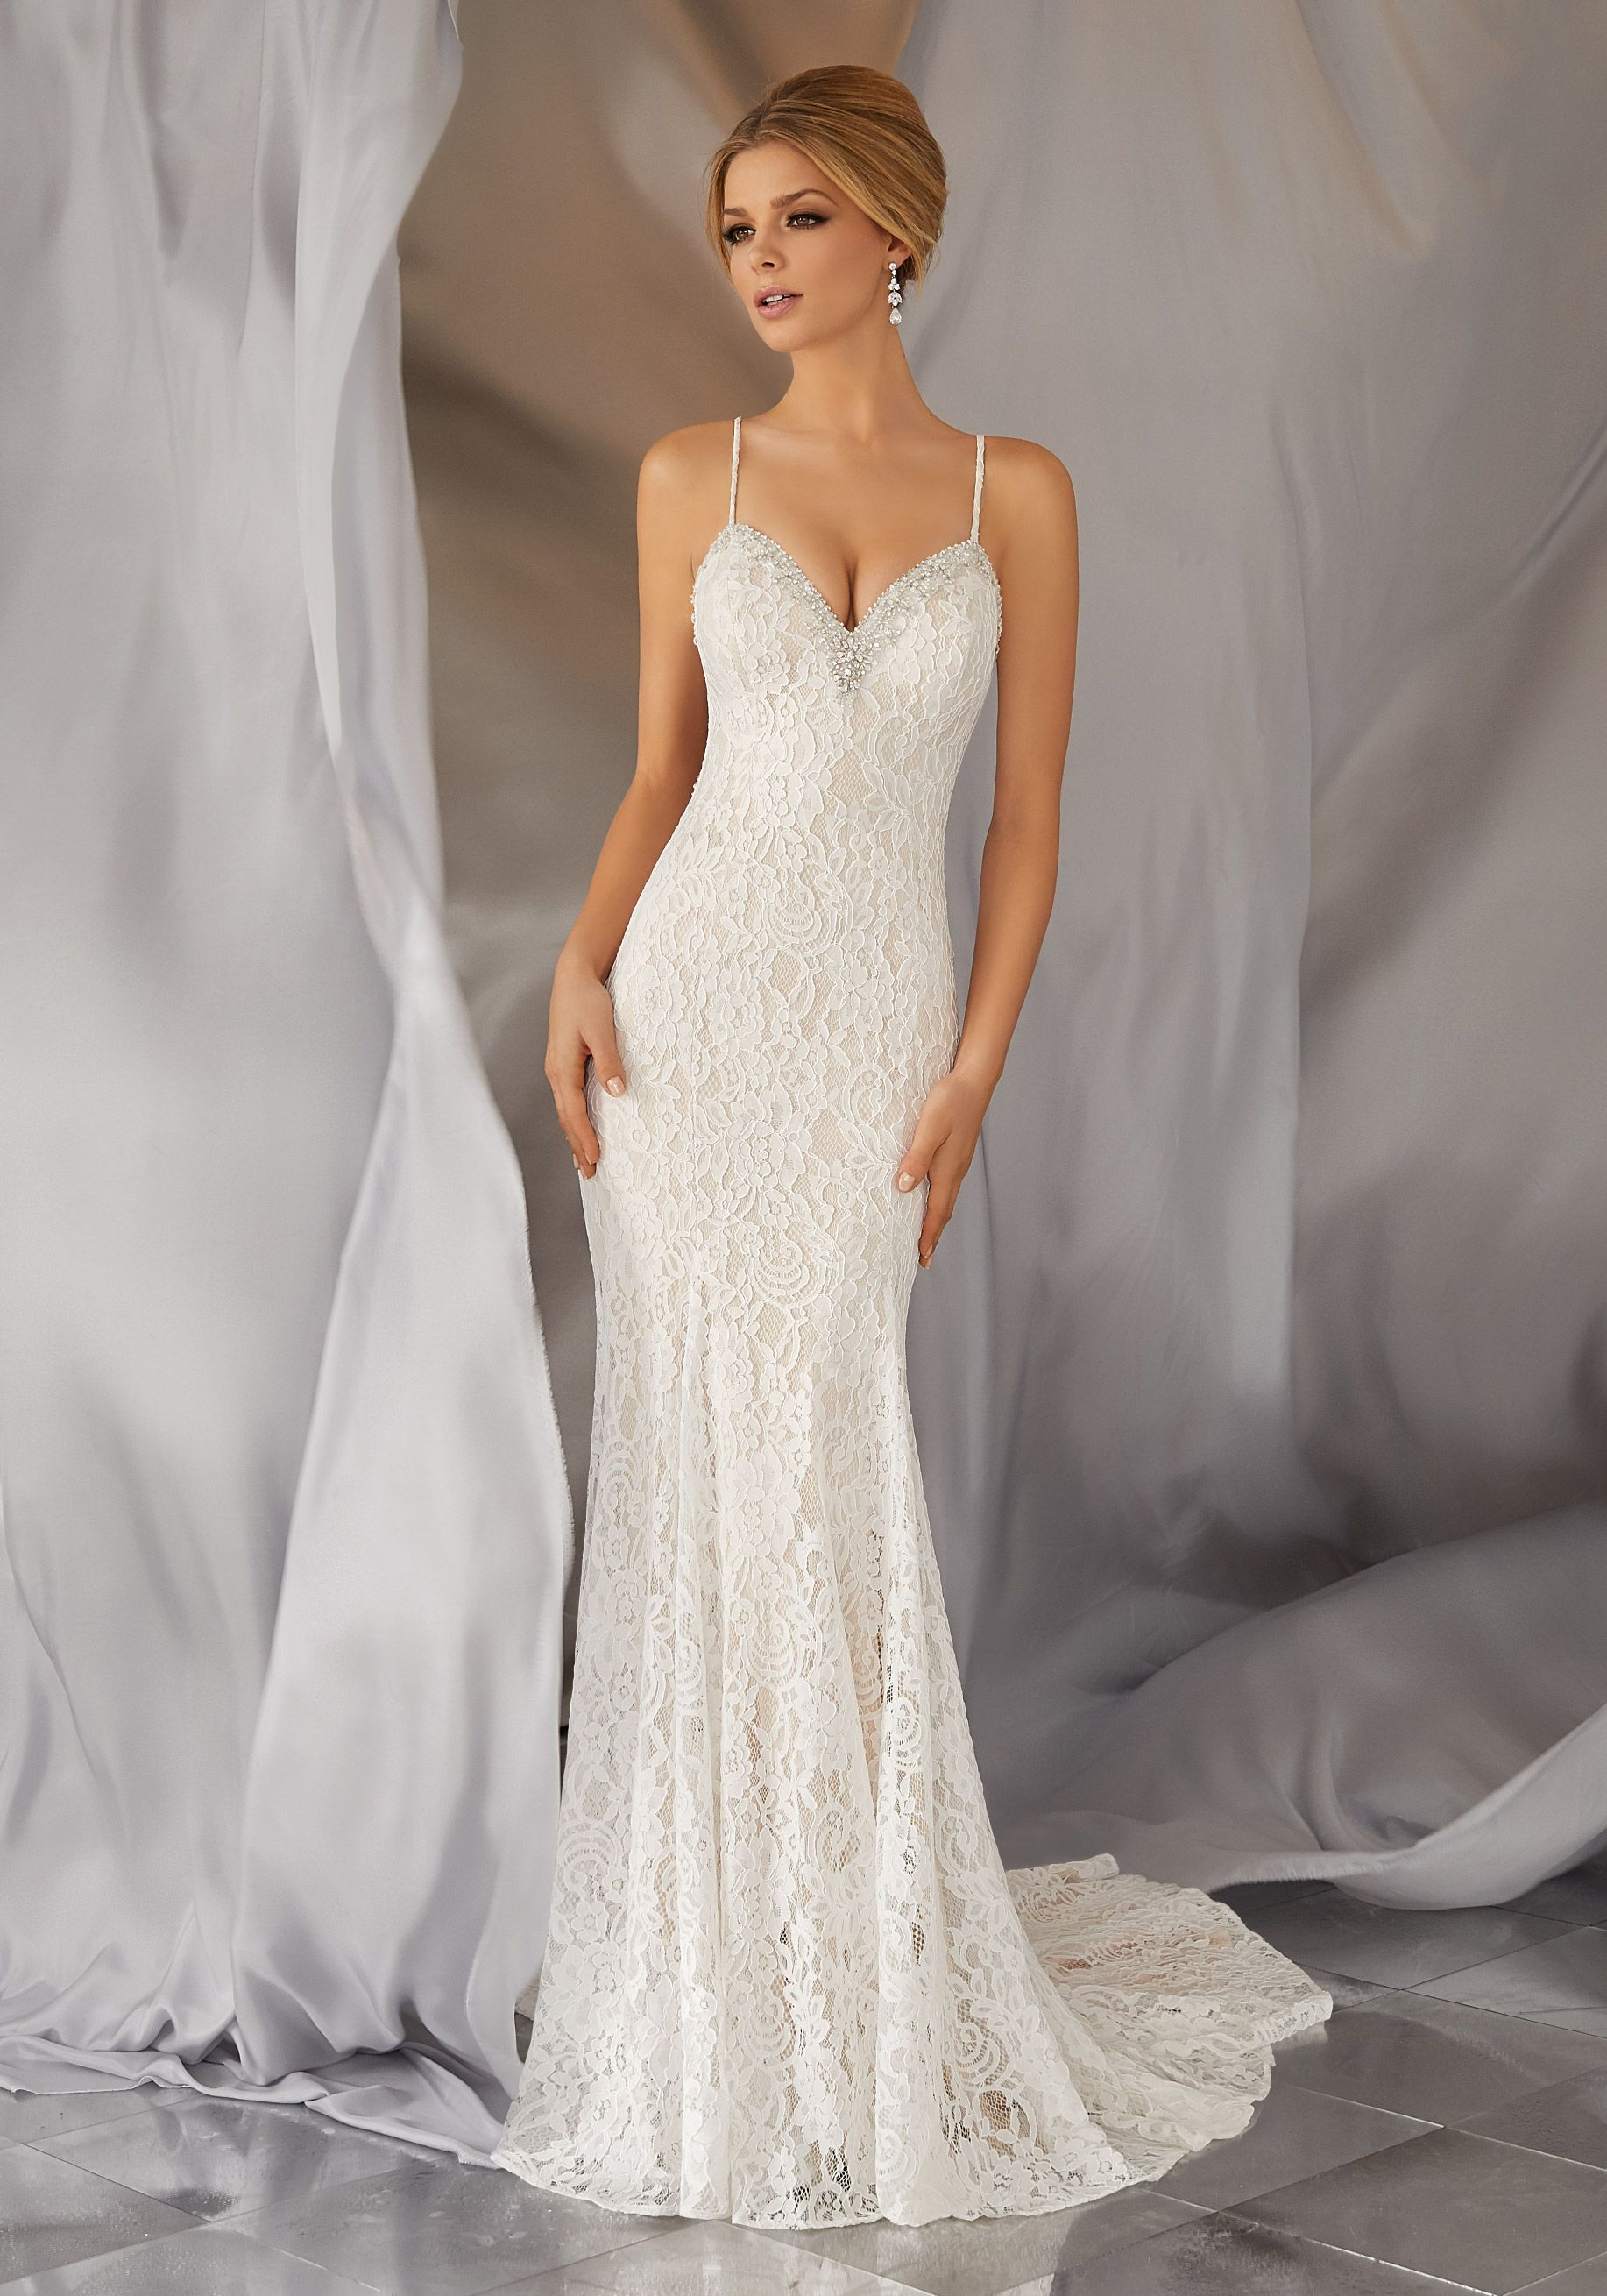 Moraia Wedding Dress in 2019  0102cb09274a